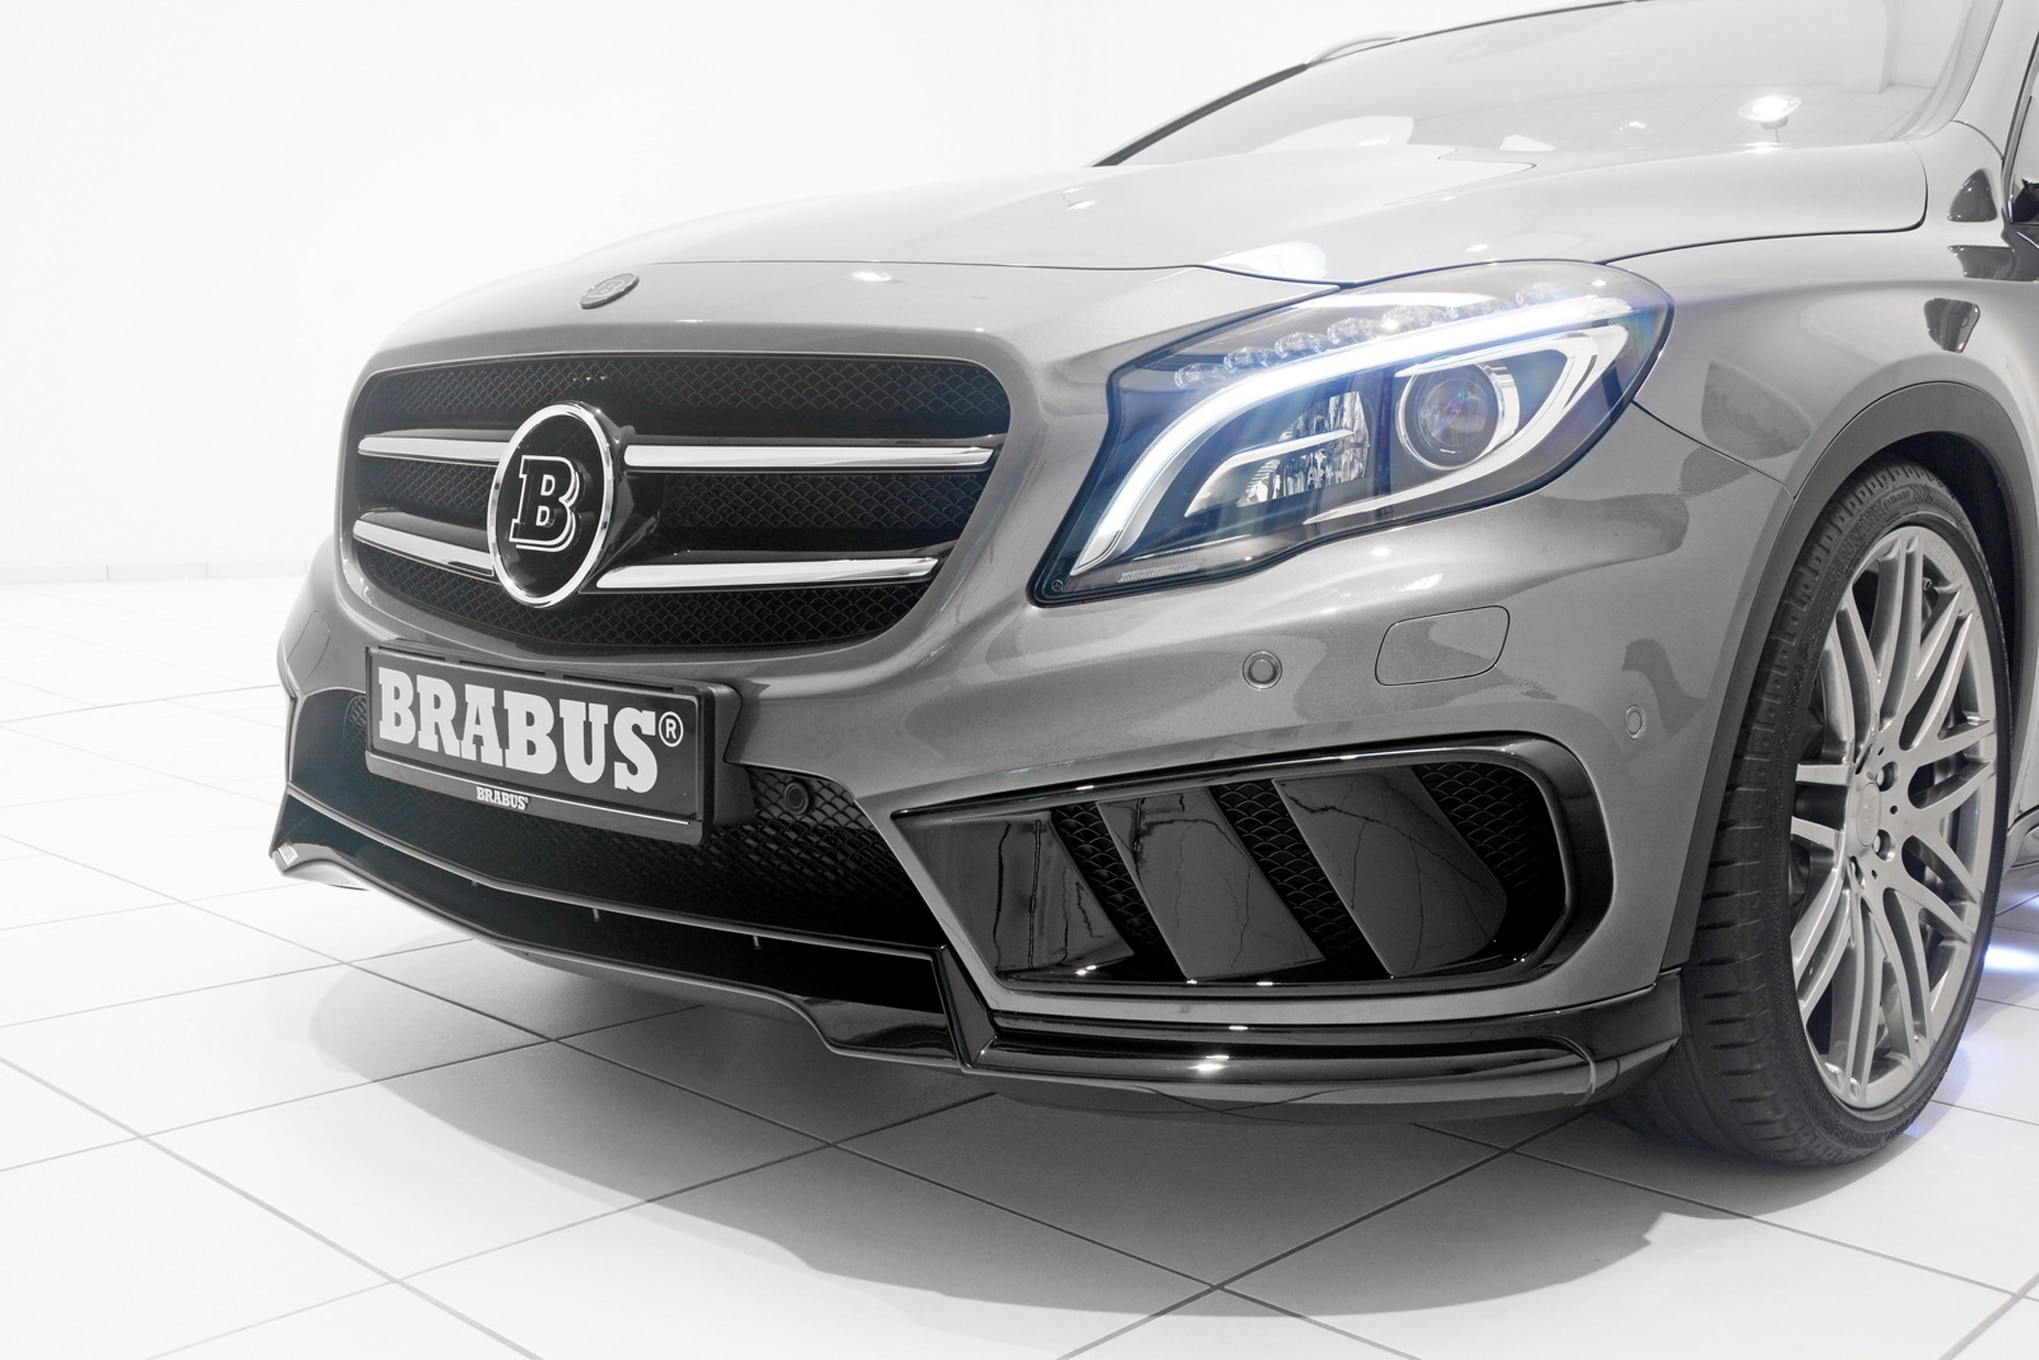 Brabus tunes 2015 mercedes benz gla45 amg to 394 hp for Mercedes benz amg kit